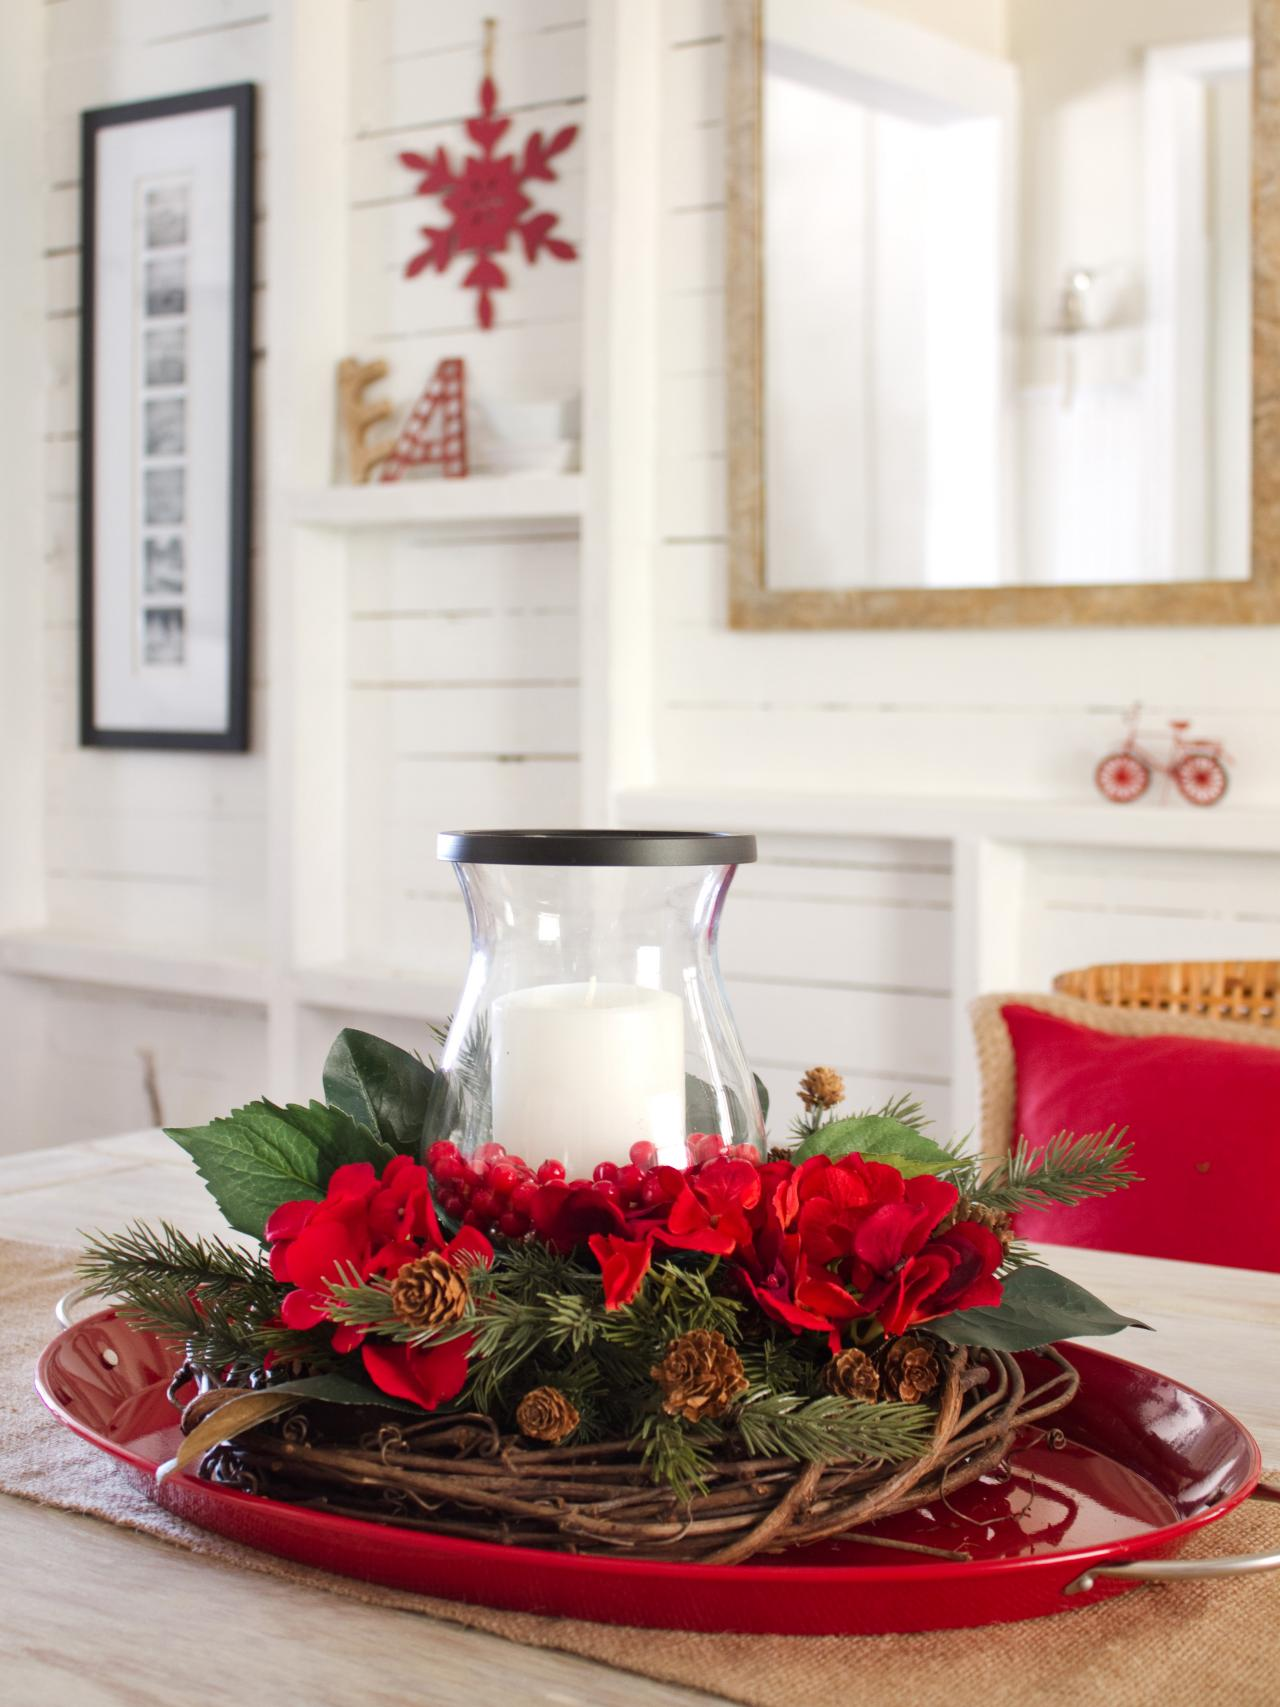 30 Stunning Christmas Centerpieces Ideas That Looks Unreal - Detectview